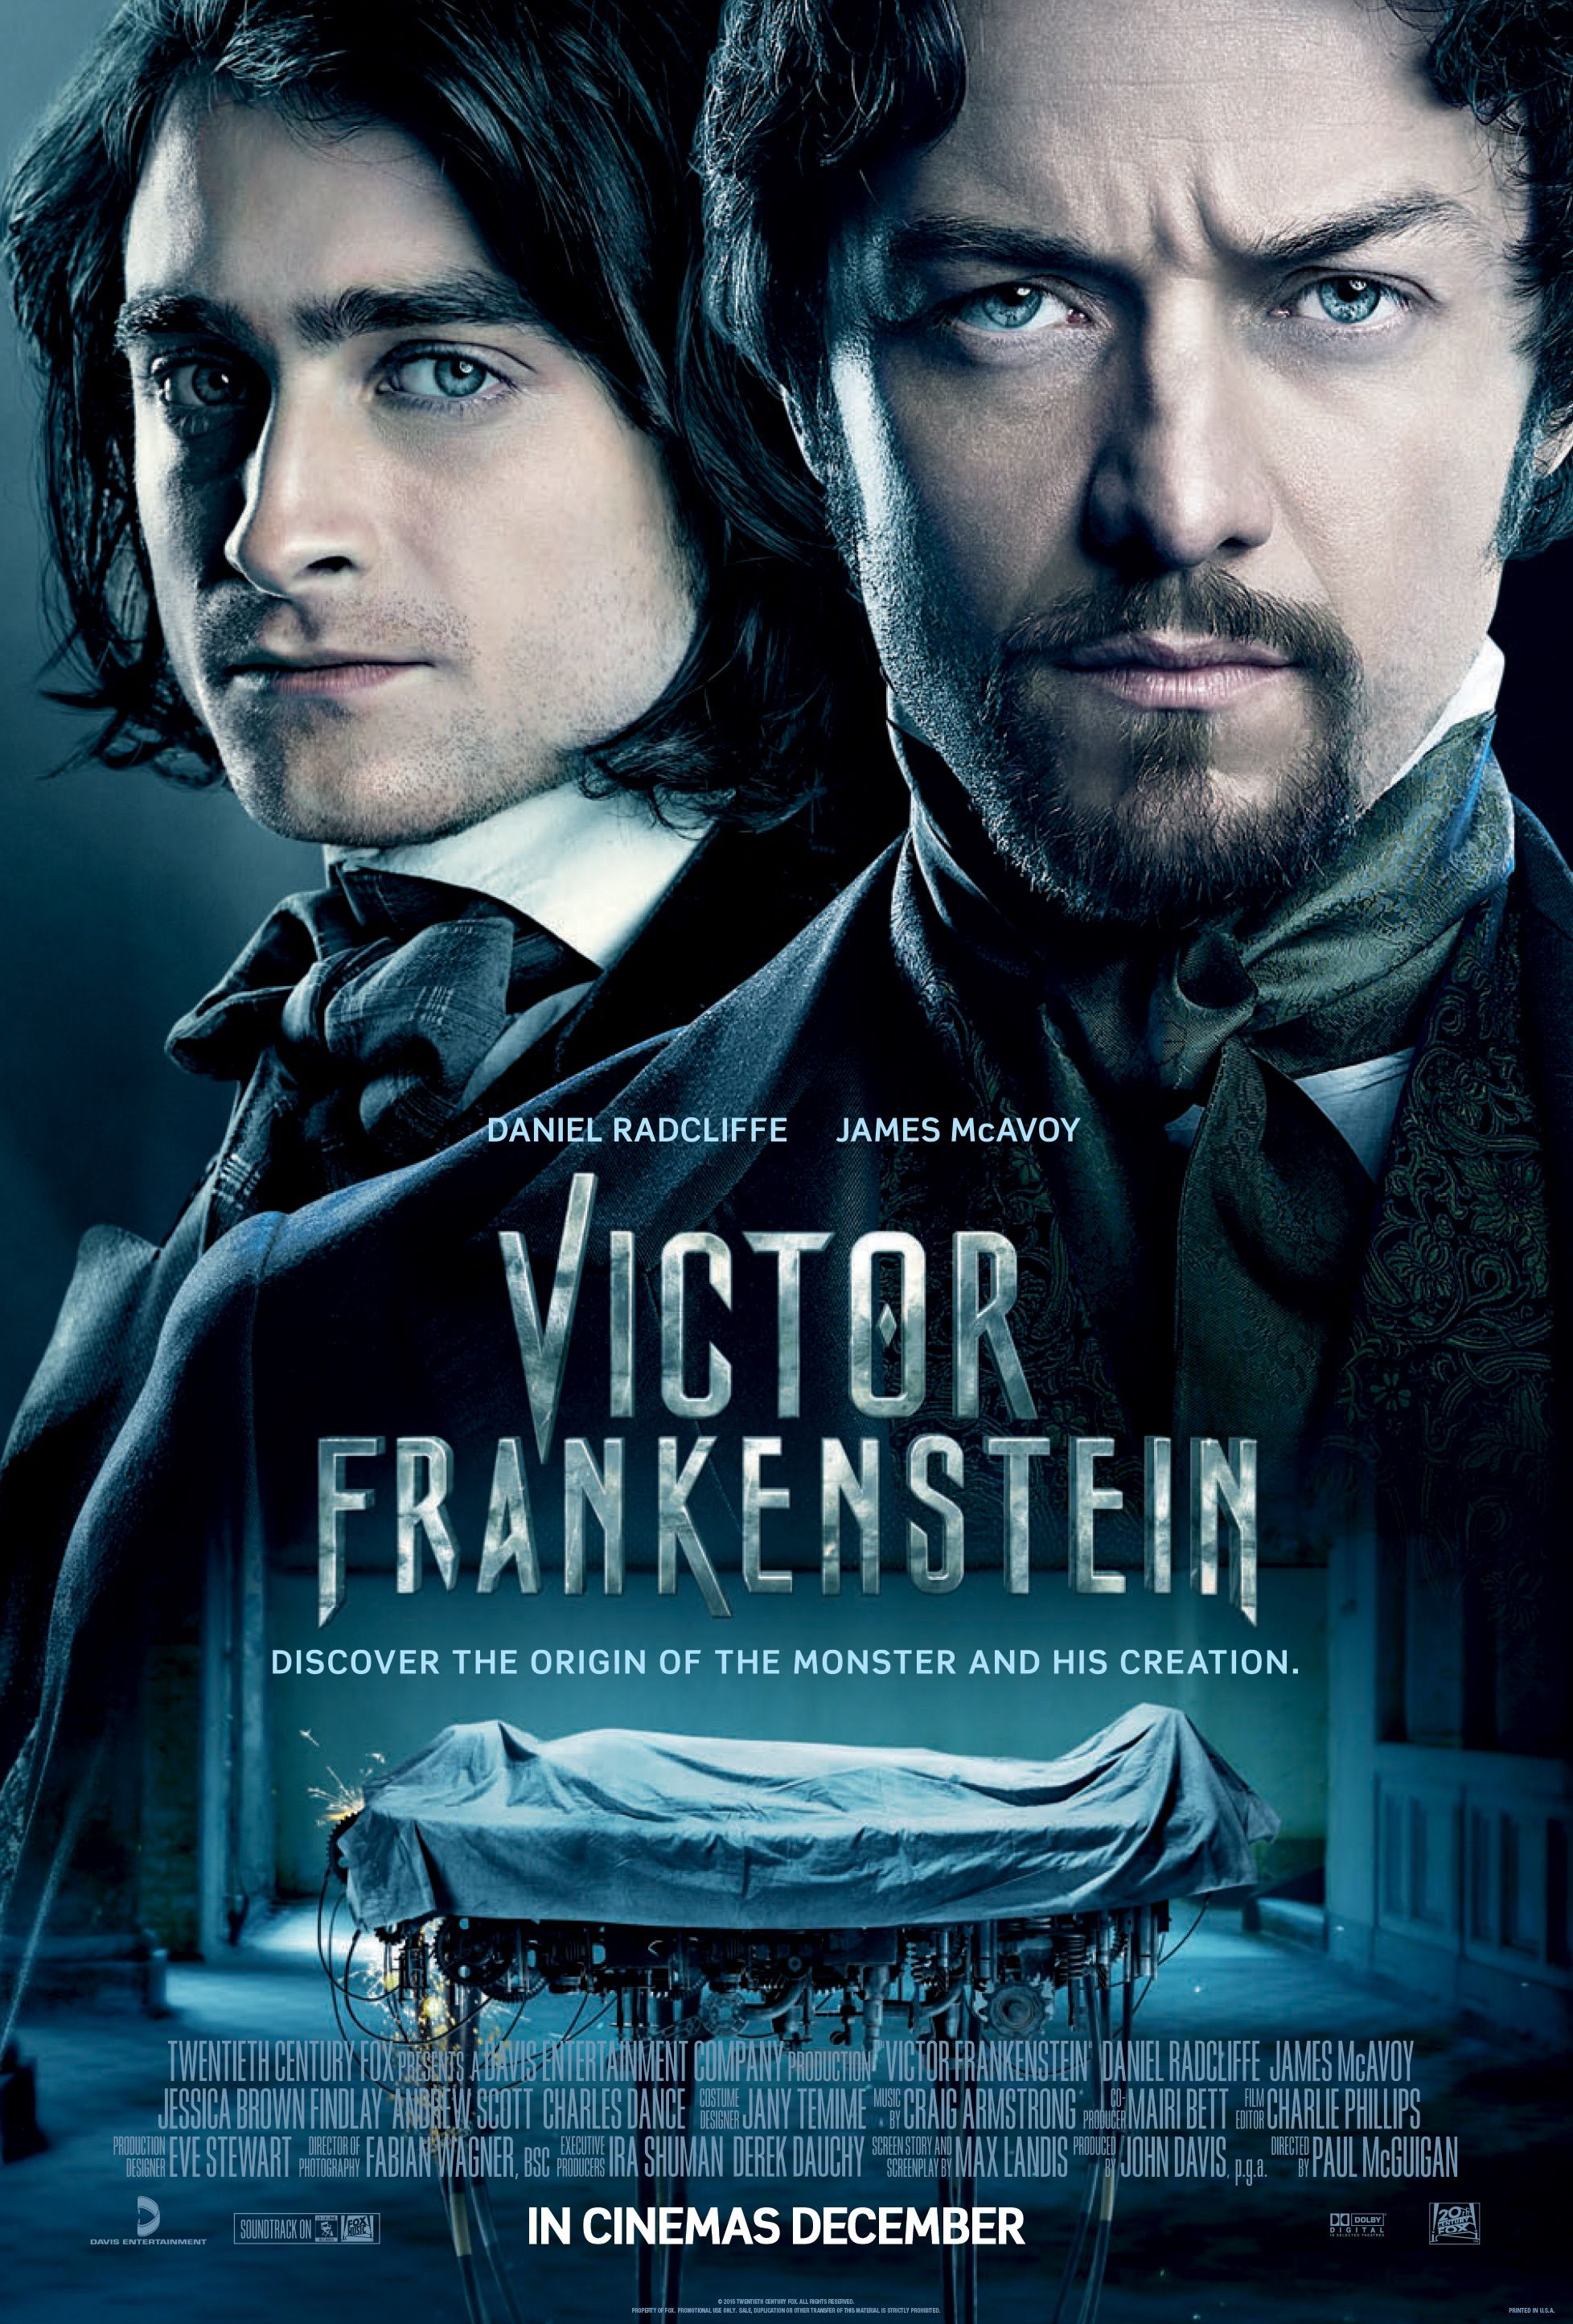 Victor Frankenstein film review: Does D-Radz deliver?